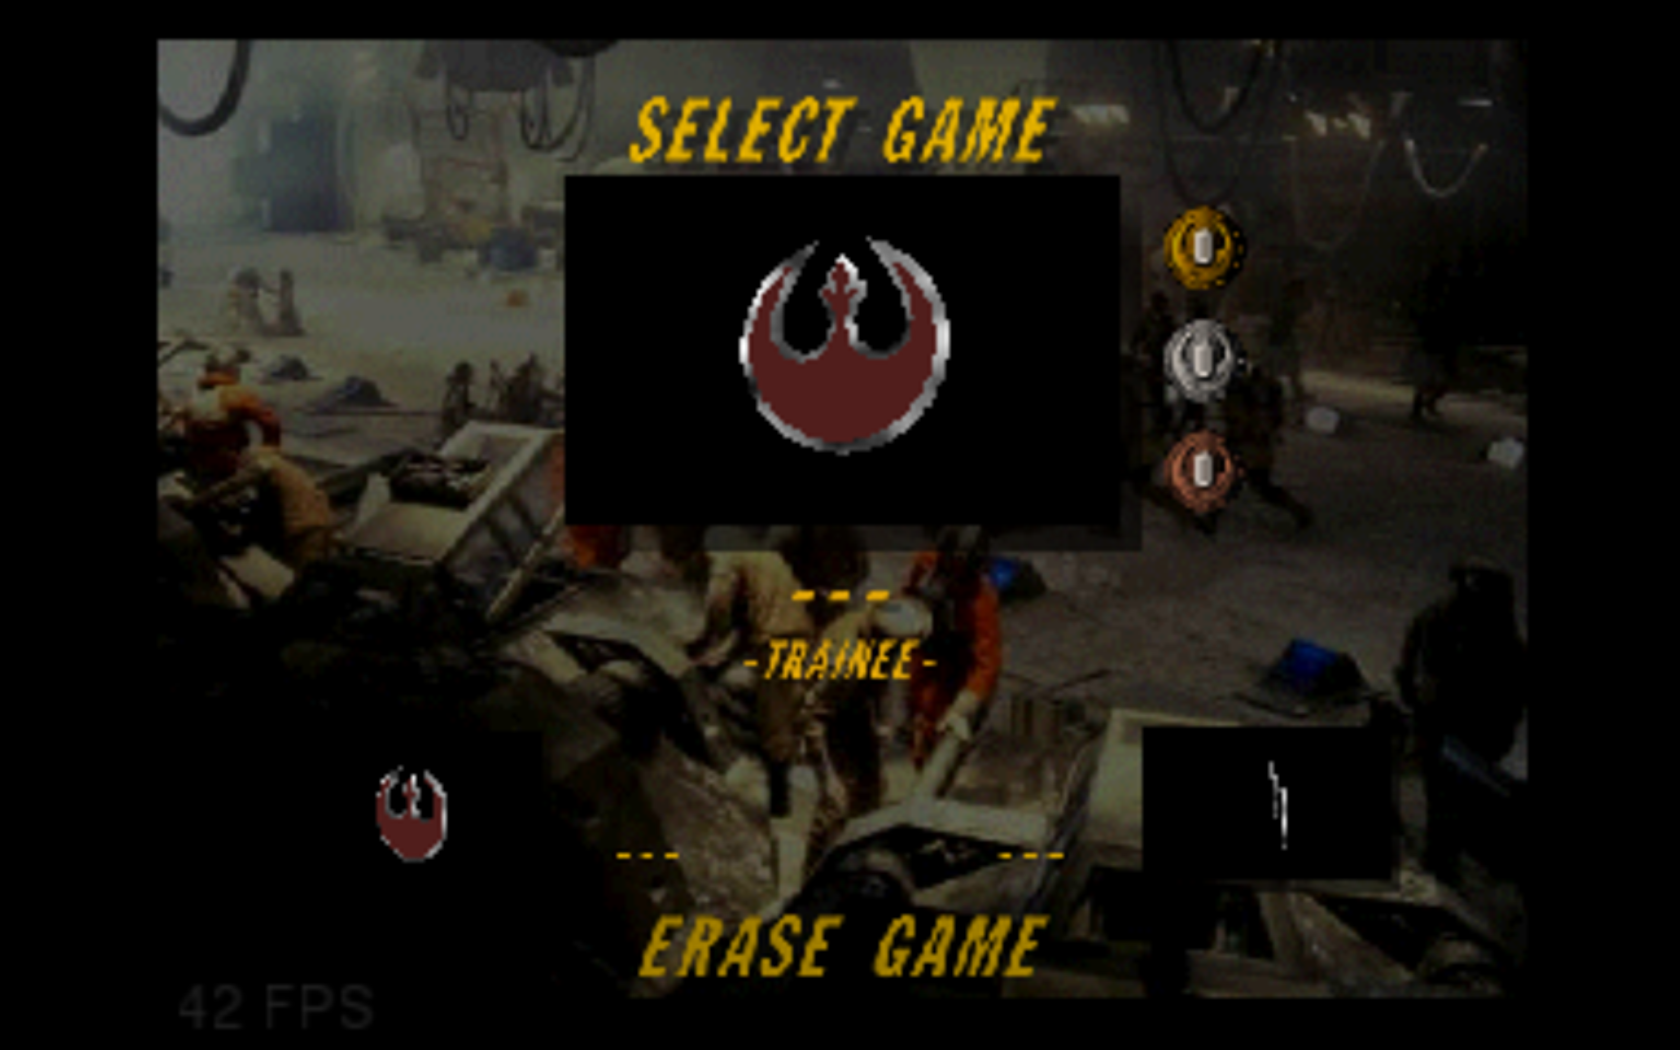 https://s3.eu-west-3.amazonaws.com/games.anthony-dessalles.com/Star Wars Rogue Squadron N64 2020 - Screenshots/star-wars-rogue-squadron-screenshot-2020112815371606577846.png